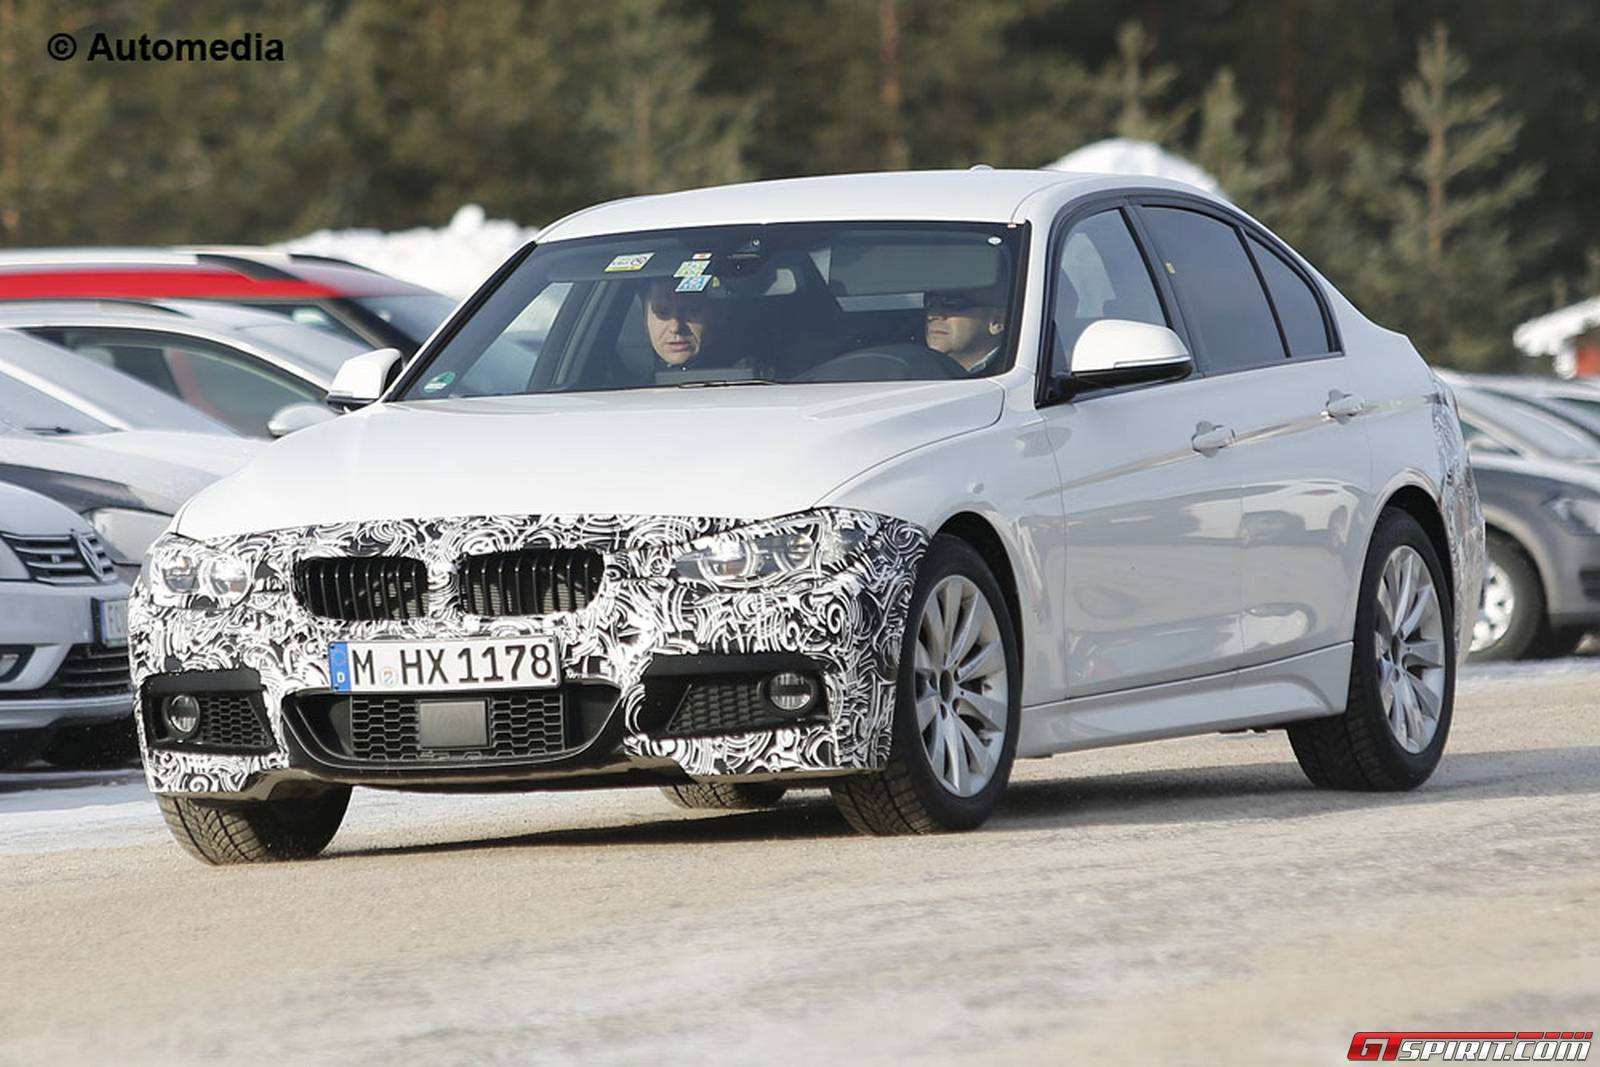 21 Great Spy Shots Bmw 3 Series History for Spy Shots Bmw 3 Series